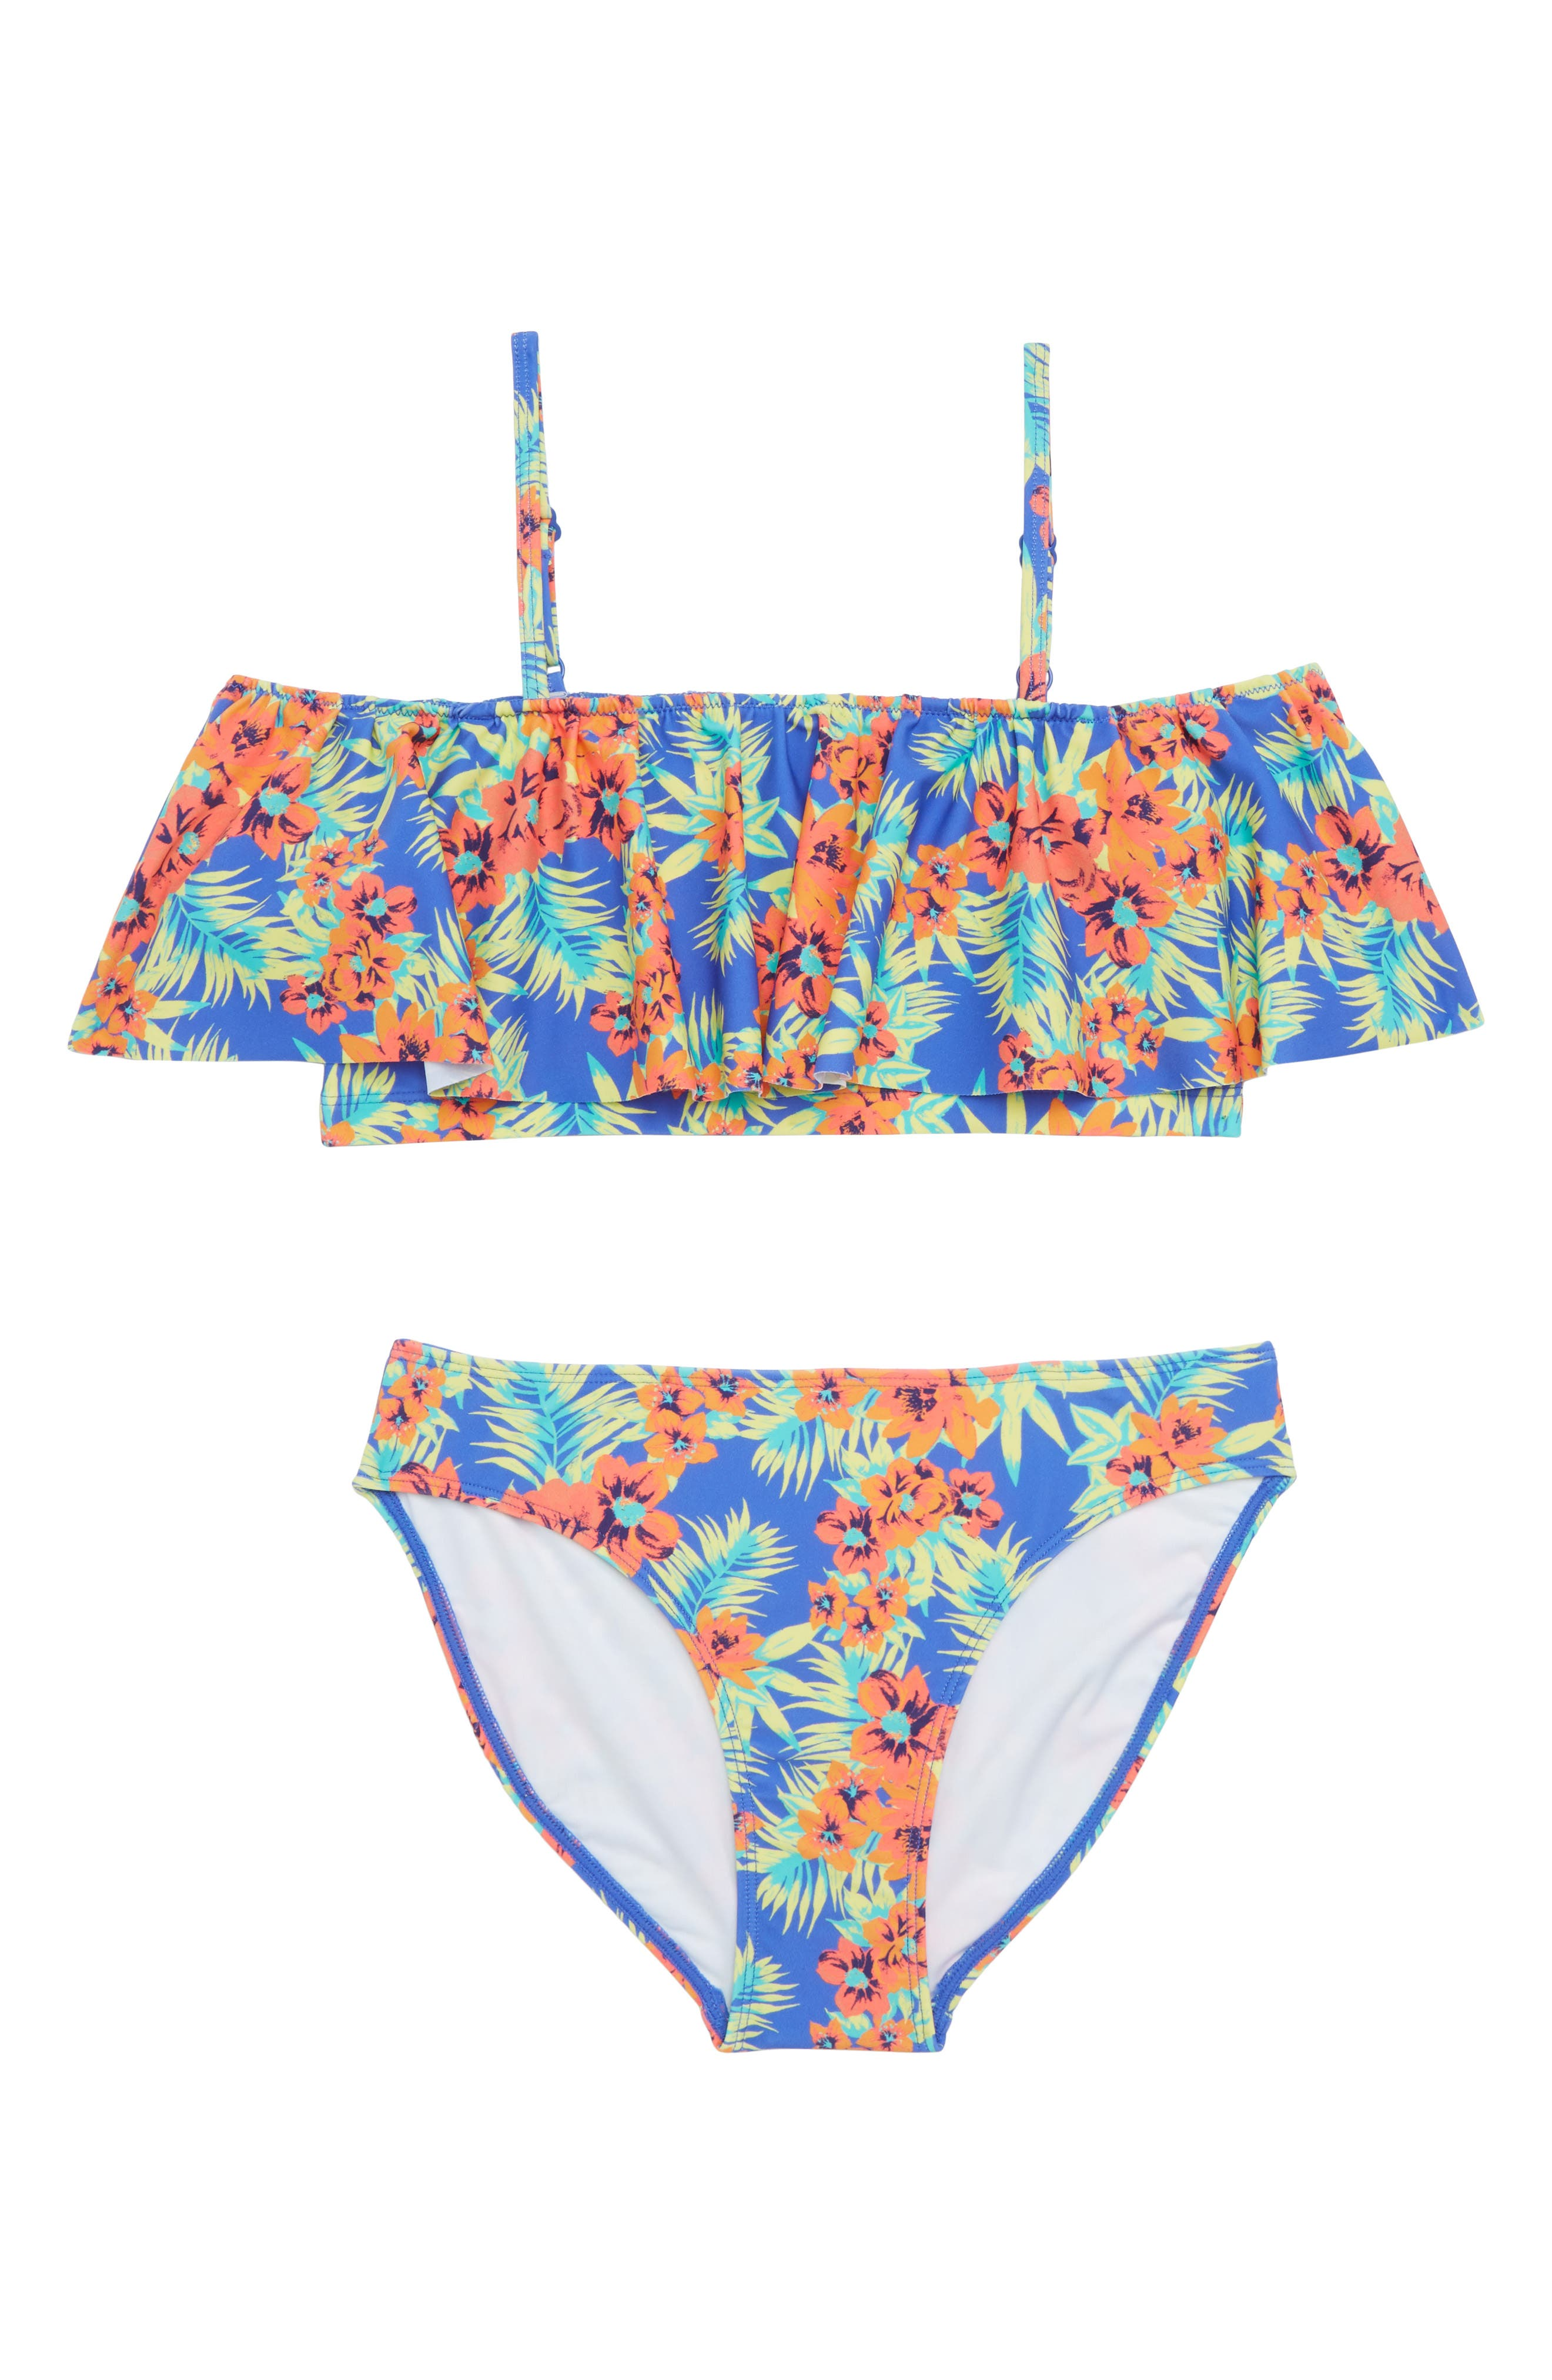 Floral Ruffle Two-Piece Swimsuit,                         Main,                         color, Blue Amparo Tropical Floral